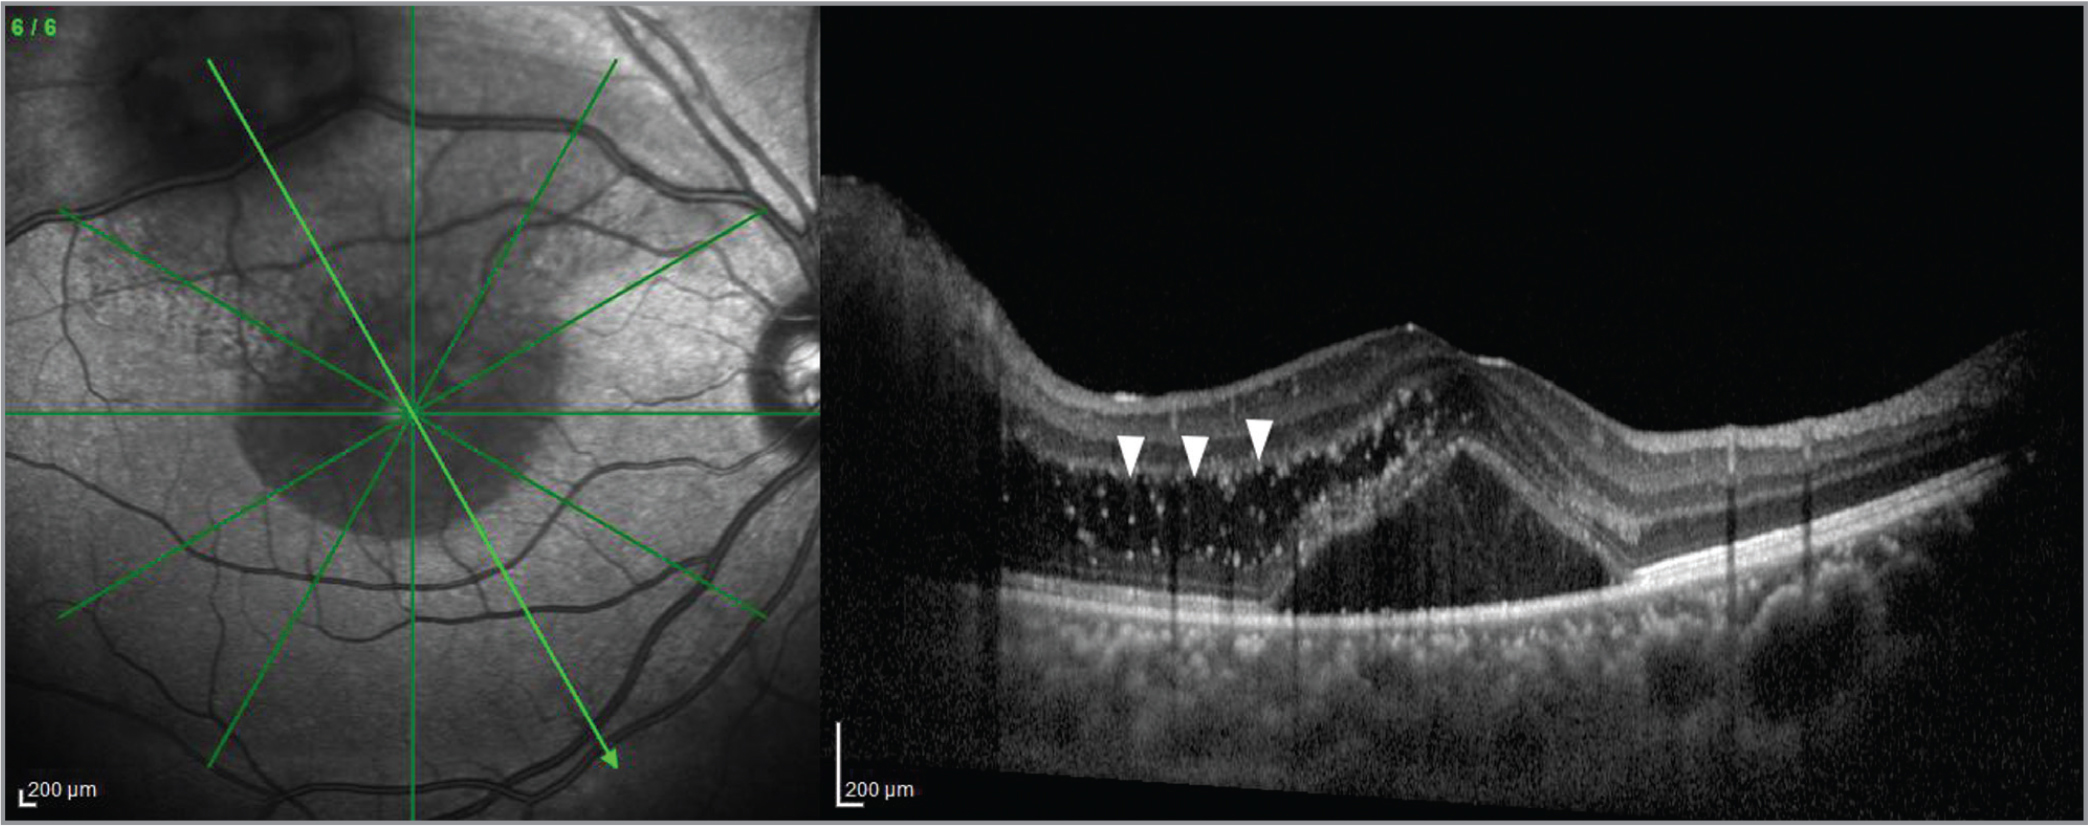 Optical coherence tomography of macula shows macular edema (arrow head) with subretinal fluid involving the fovea originating from the superotemporal arcade astrocytic hamartoma lesion.